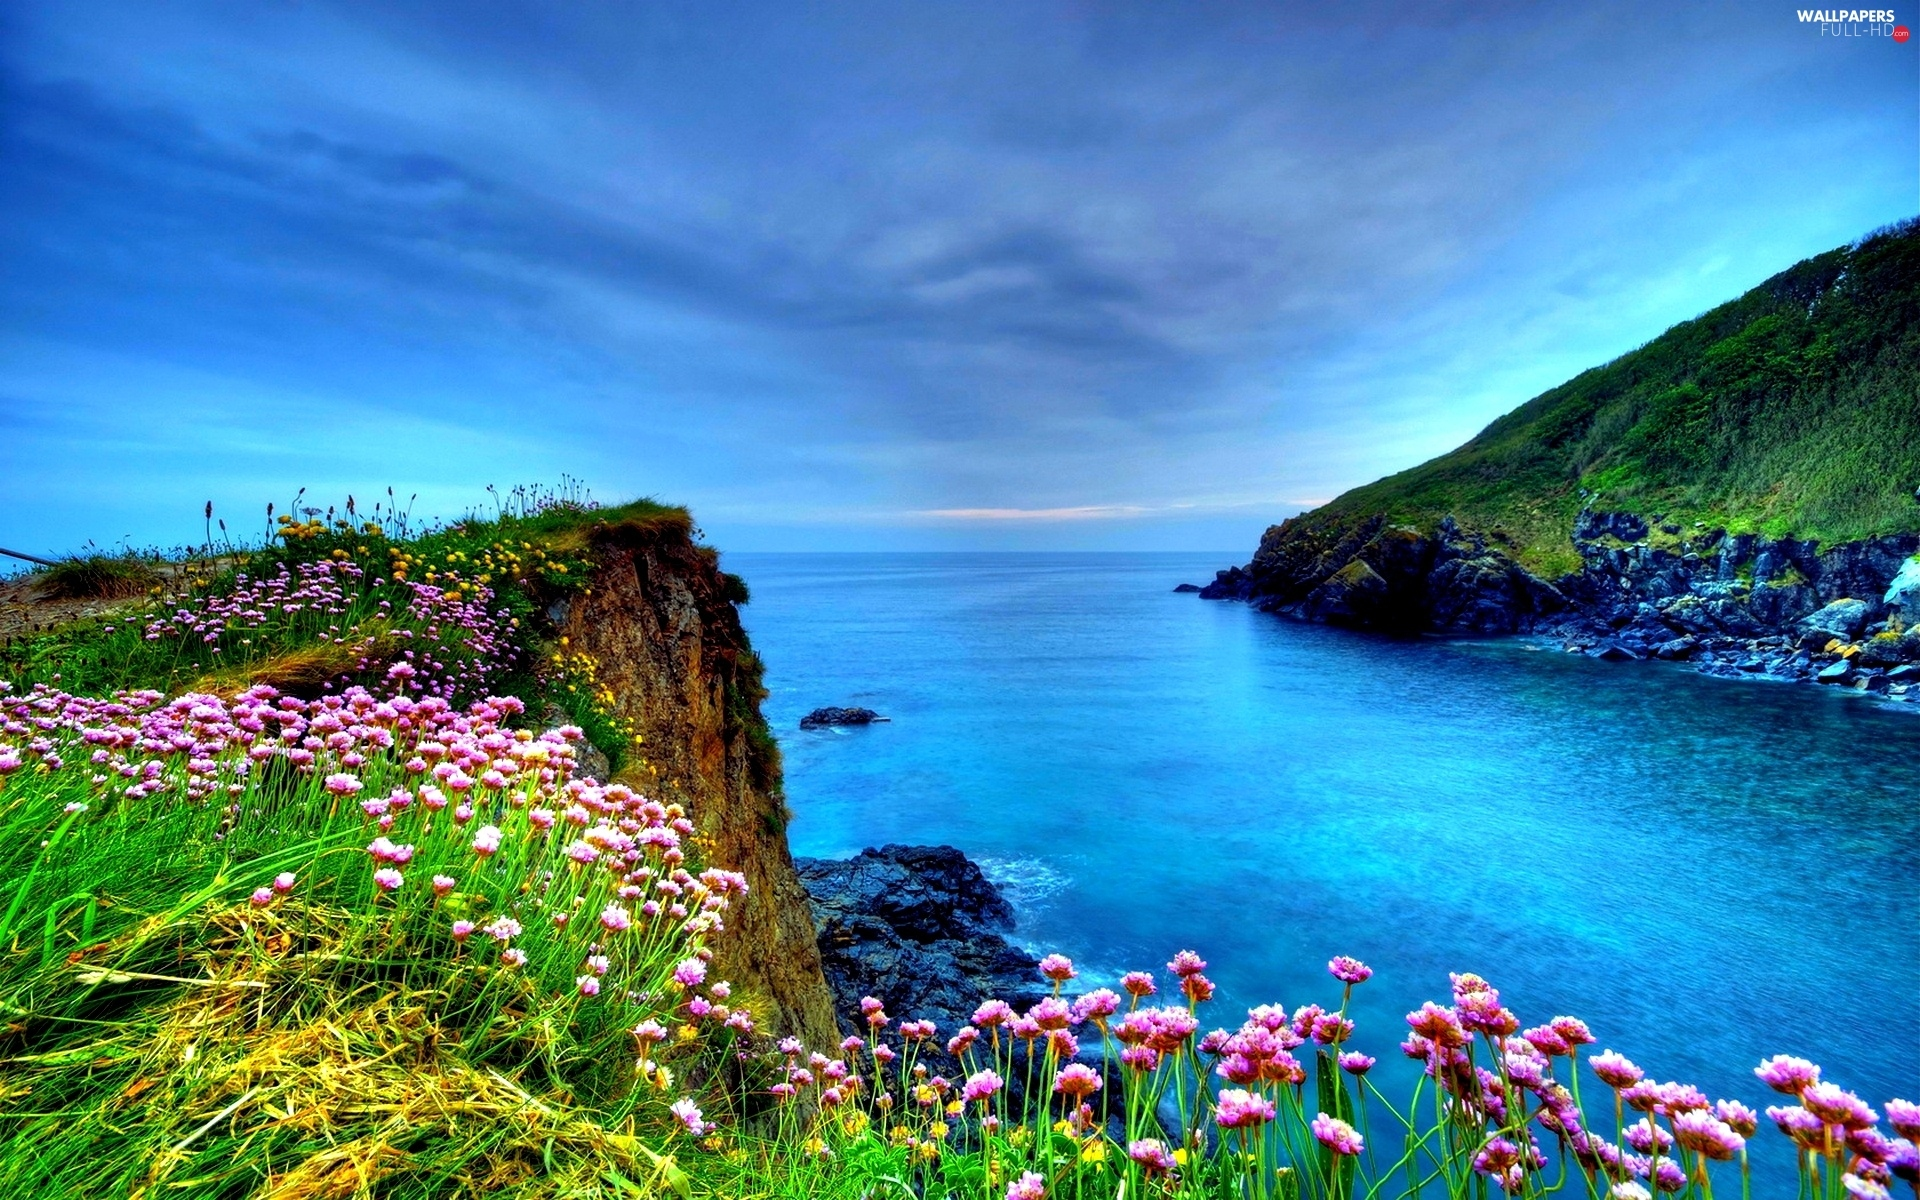 Coast, Flowers, sea